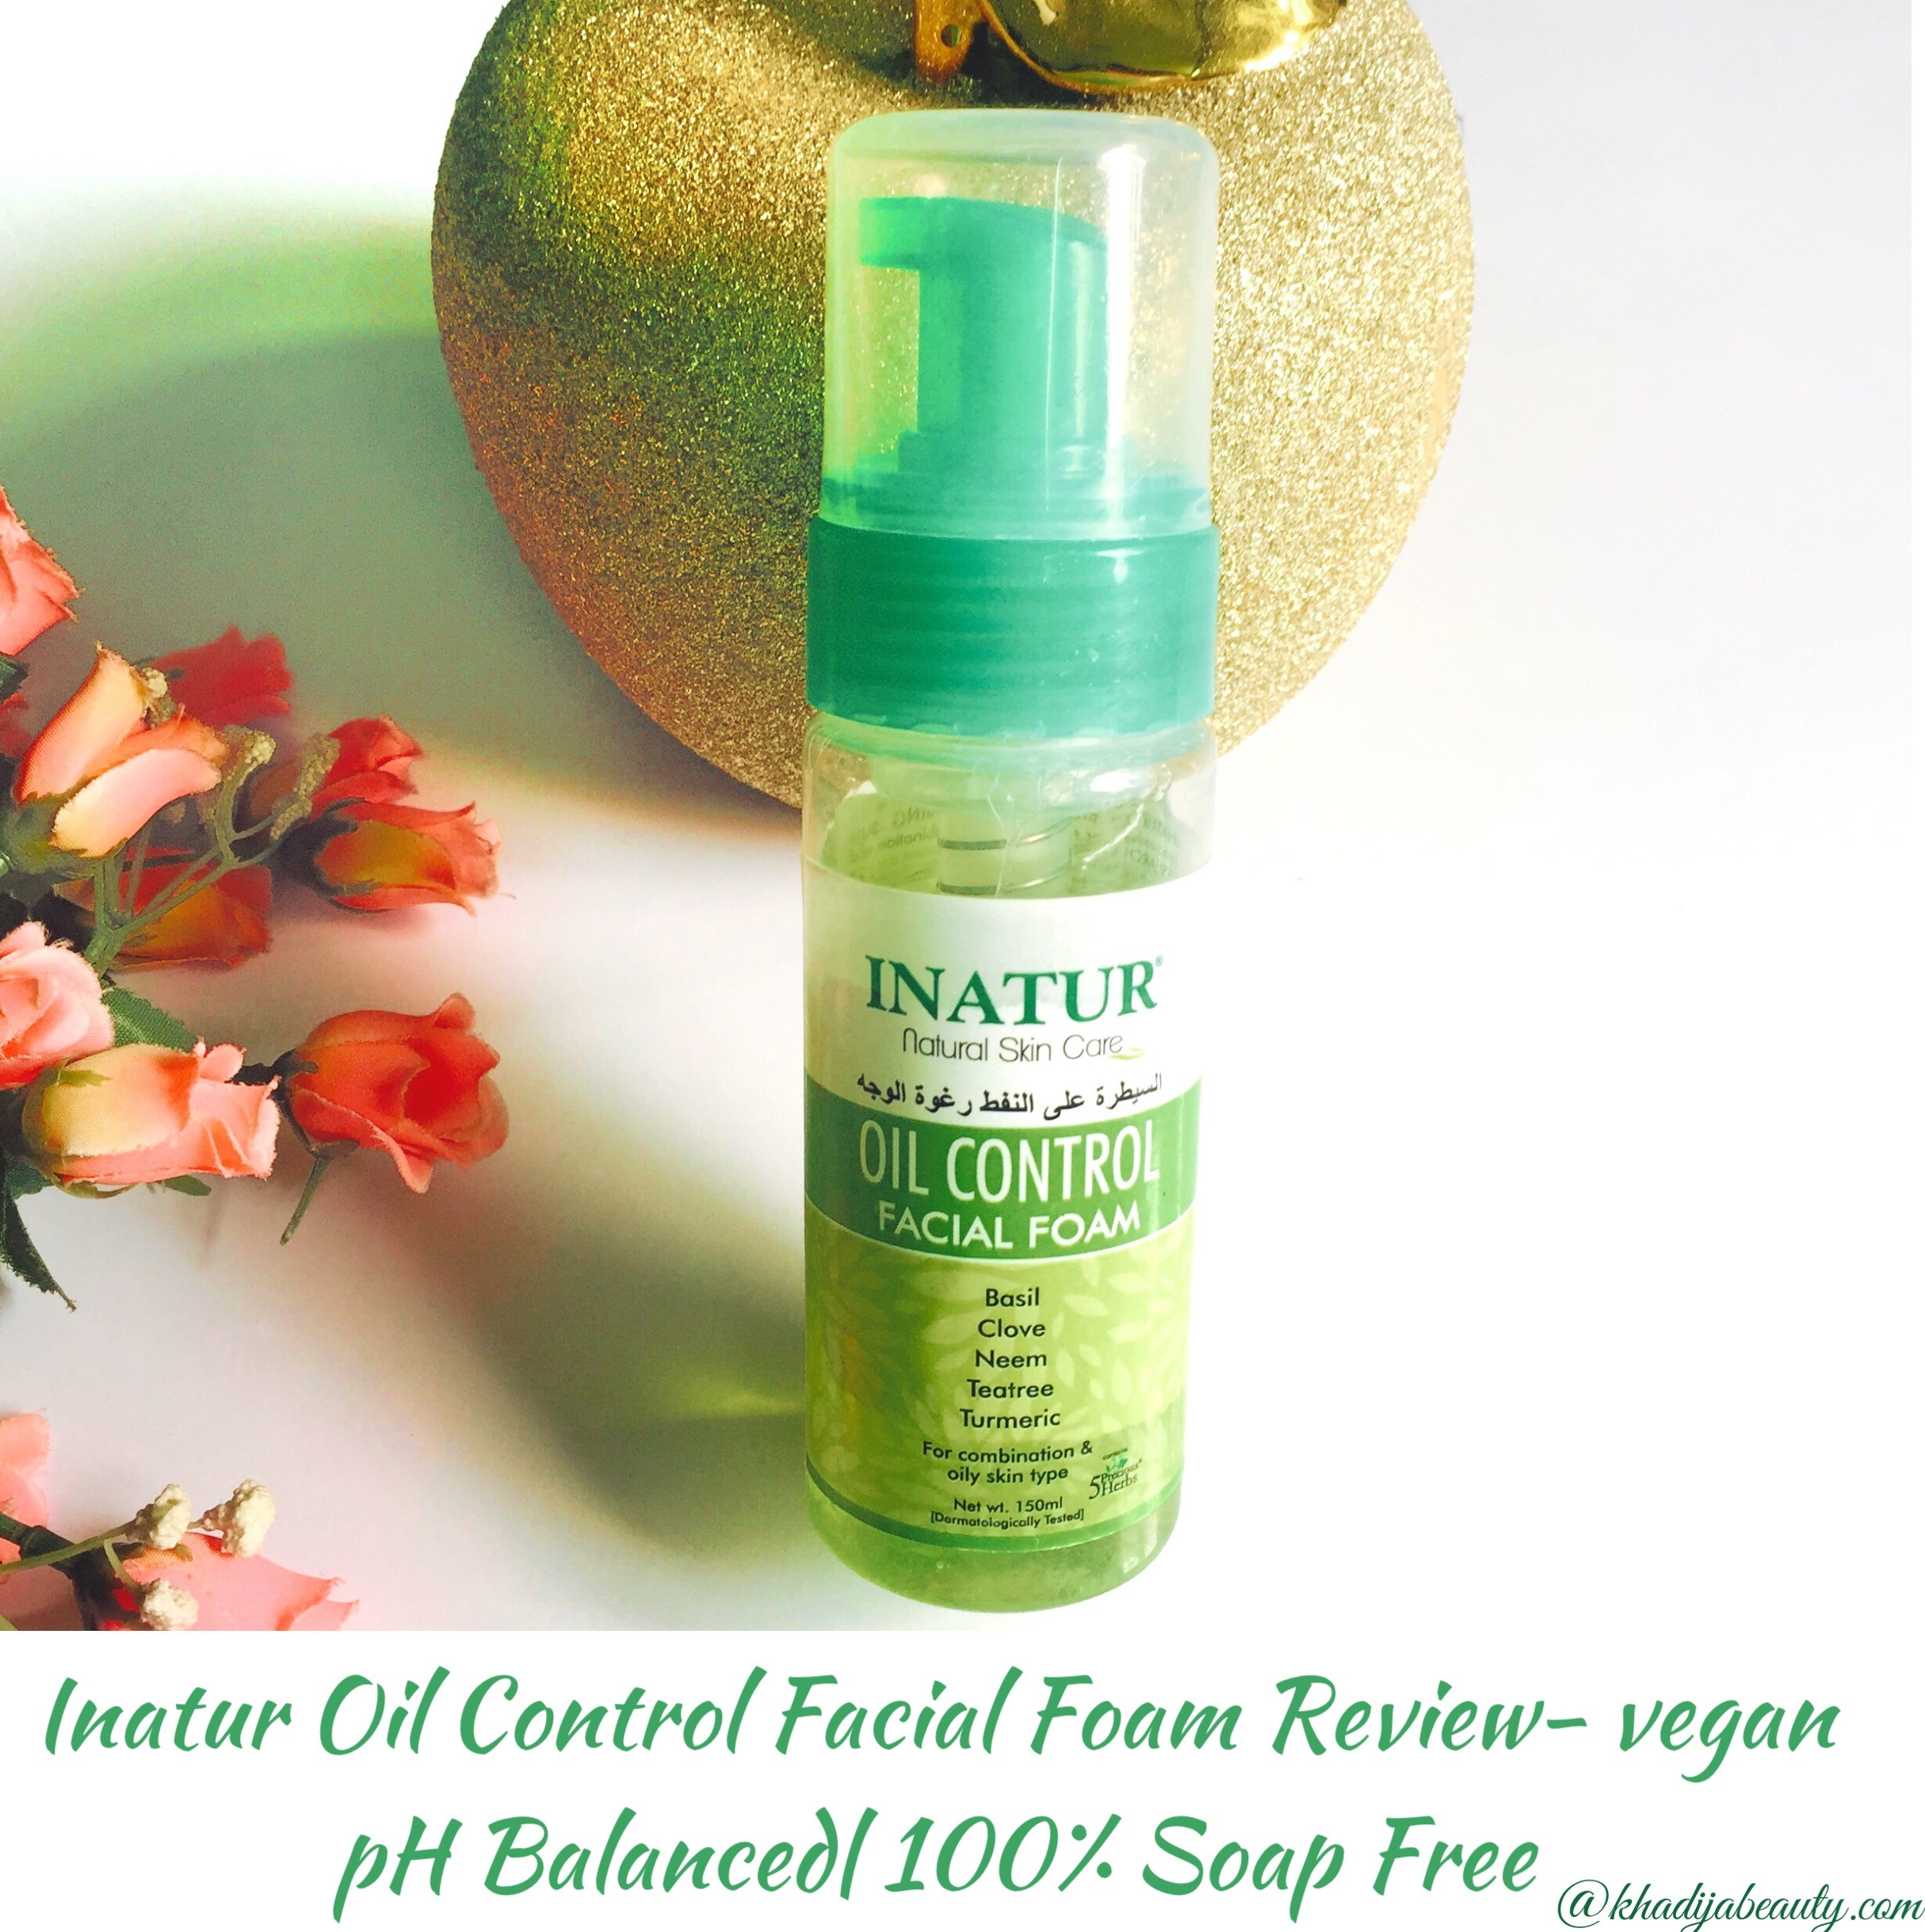 Inatur Oil Control Facial Foam Review| Vegan| pH balanced| Soap free